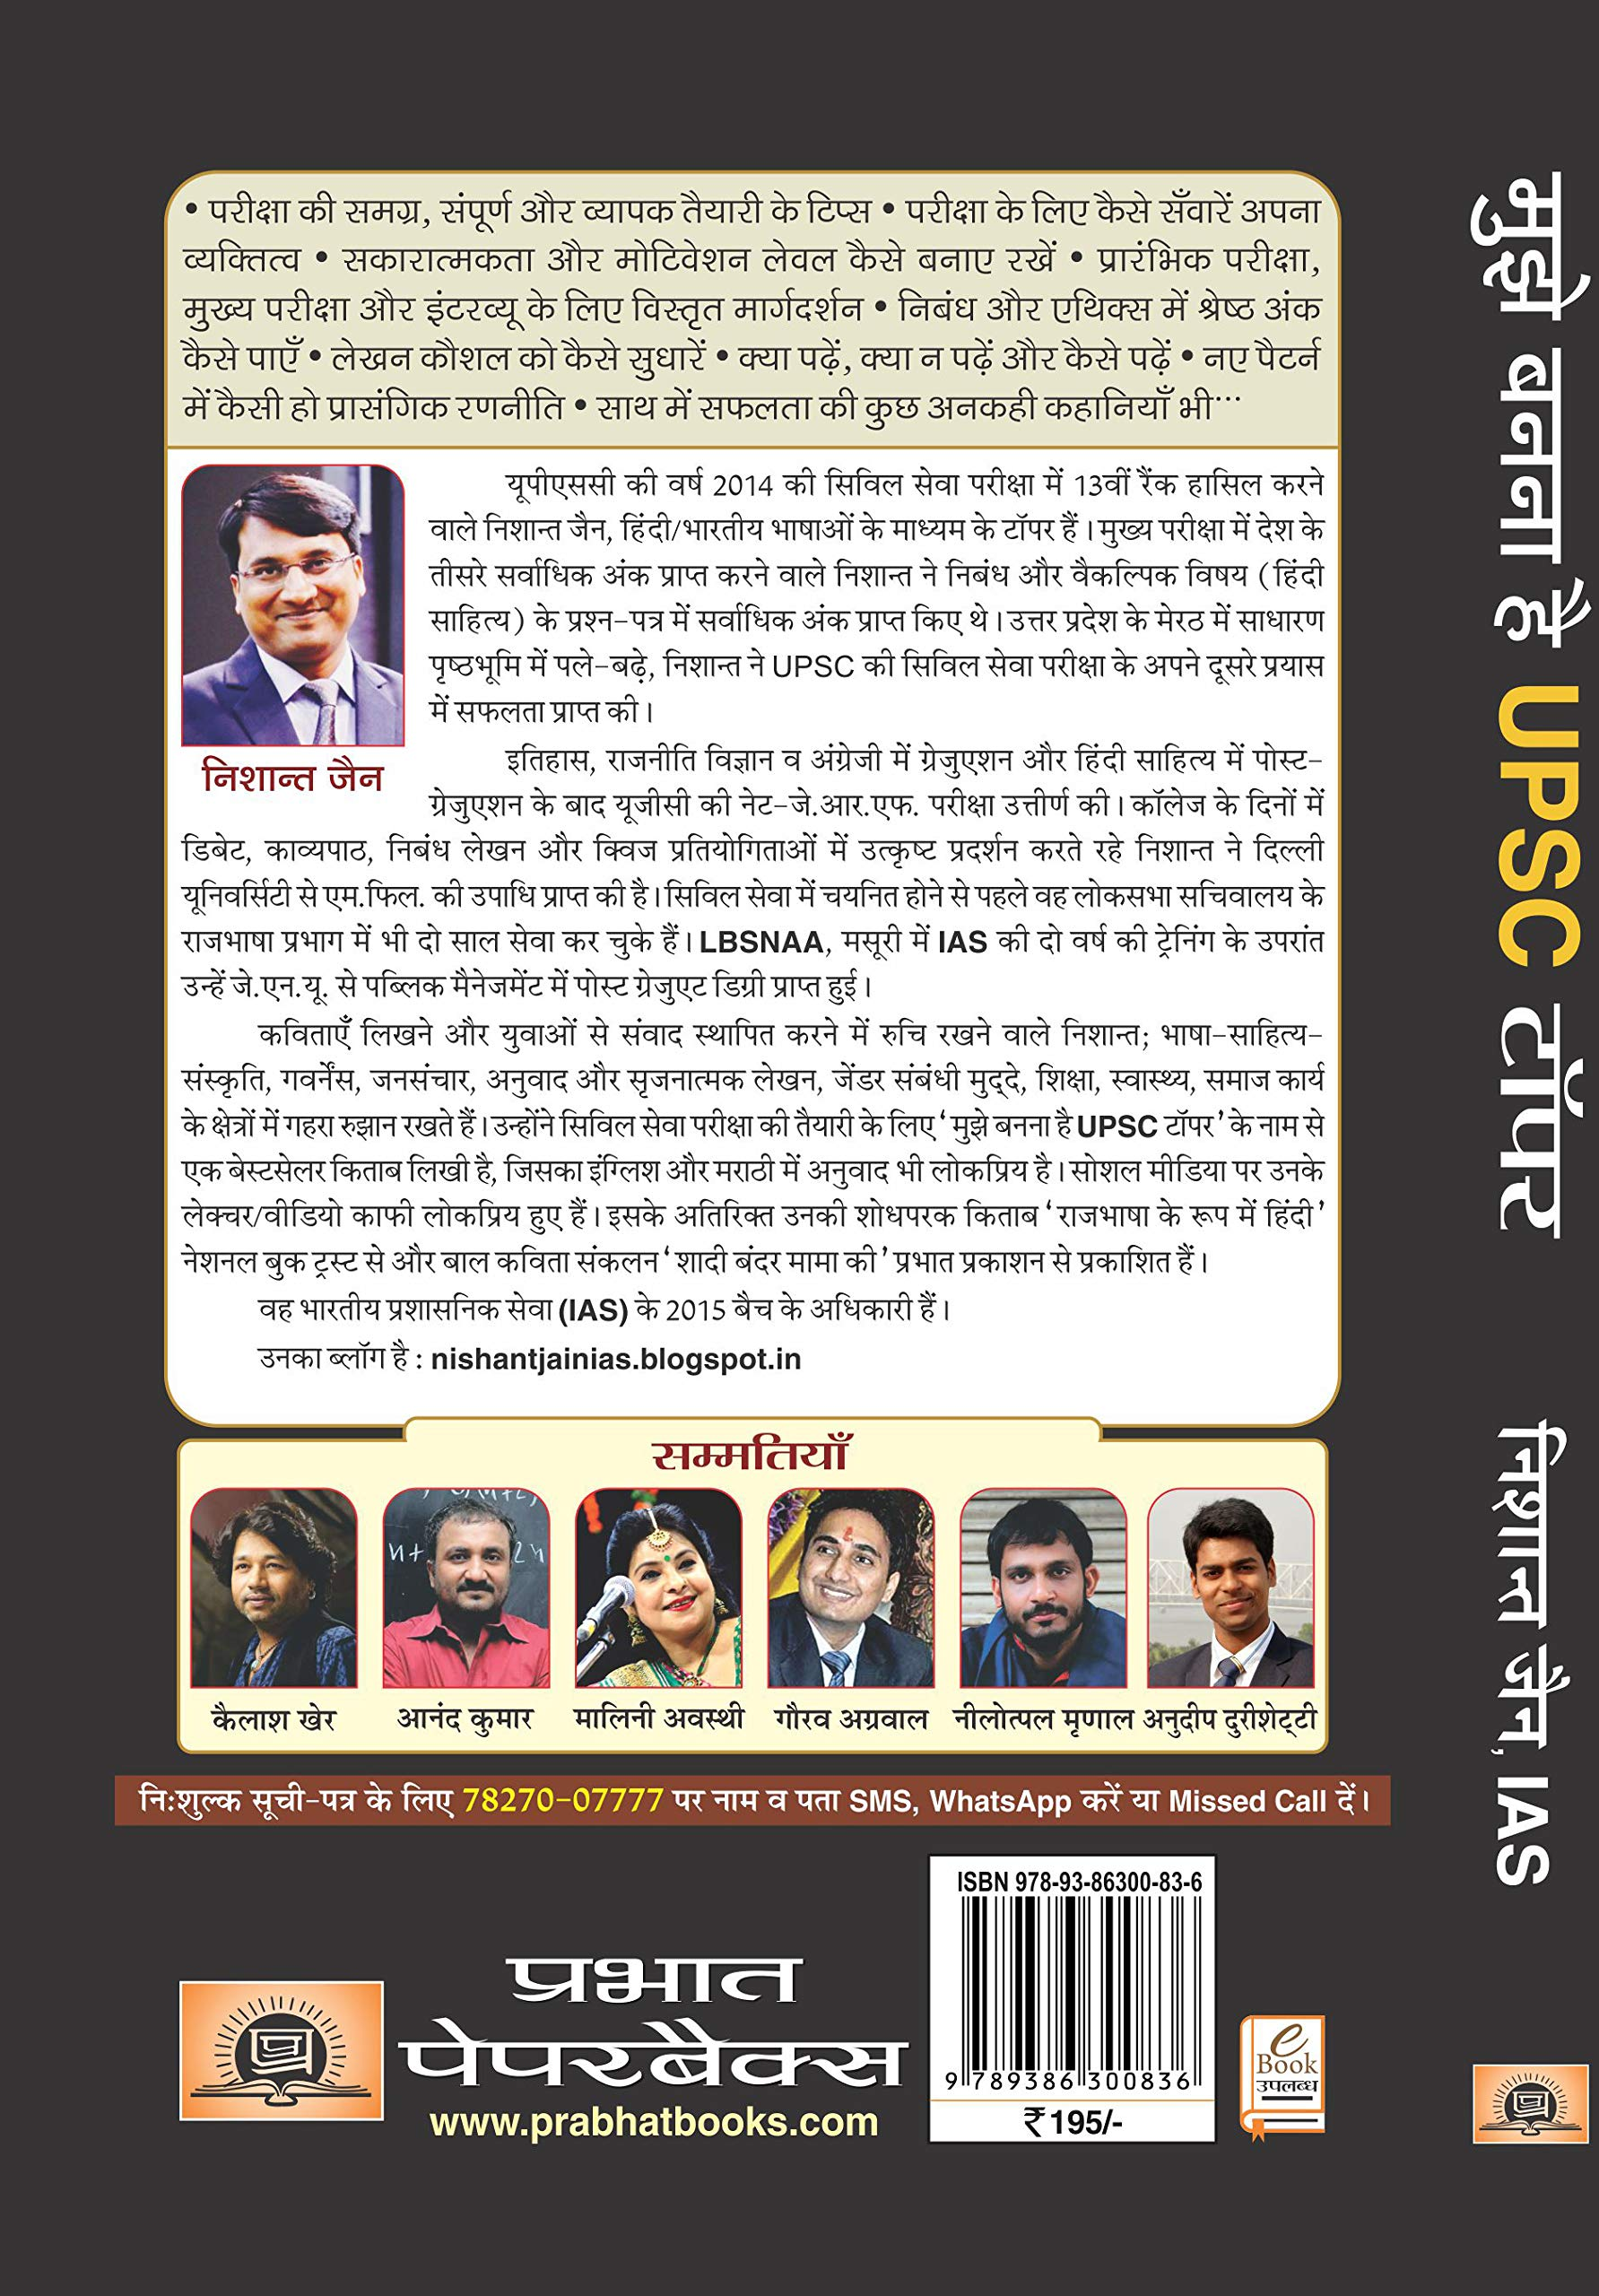 Buy Mujhe Banna hai UPSC Topper Book Online at Low Prices in